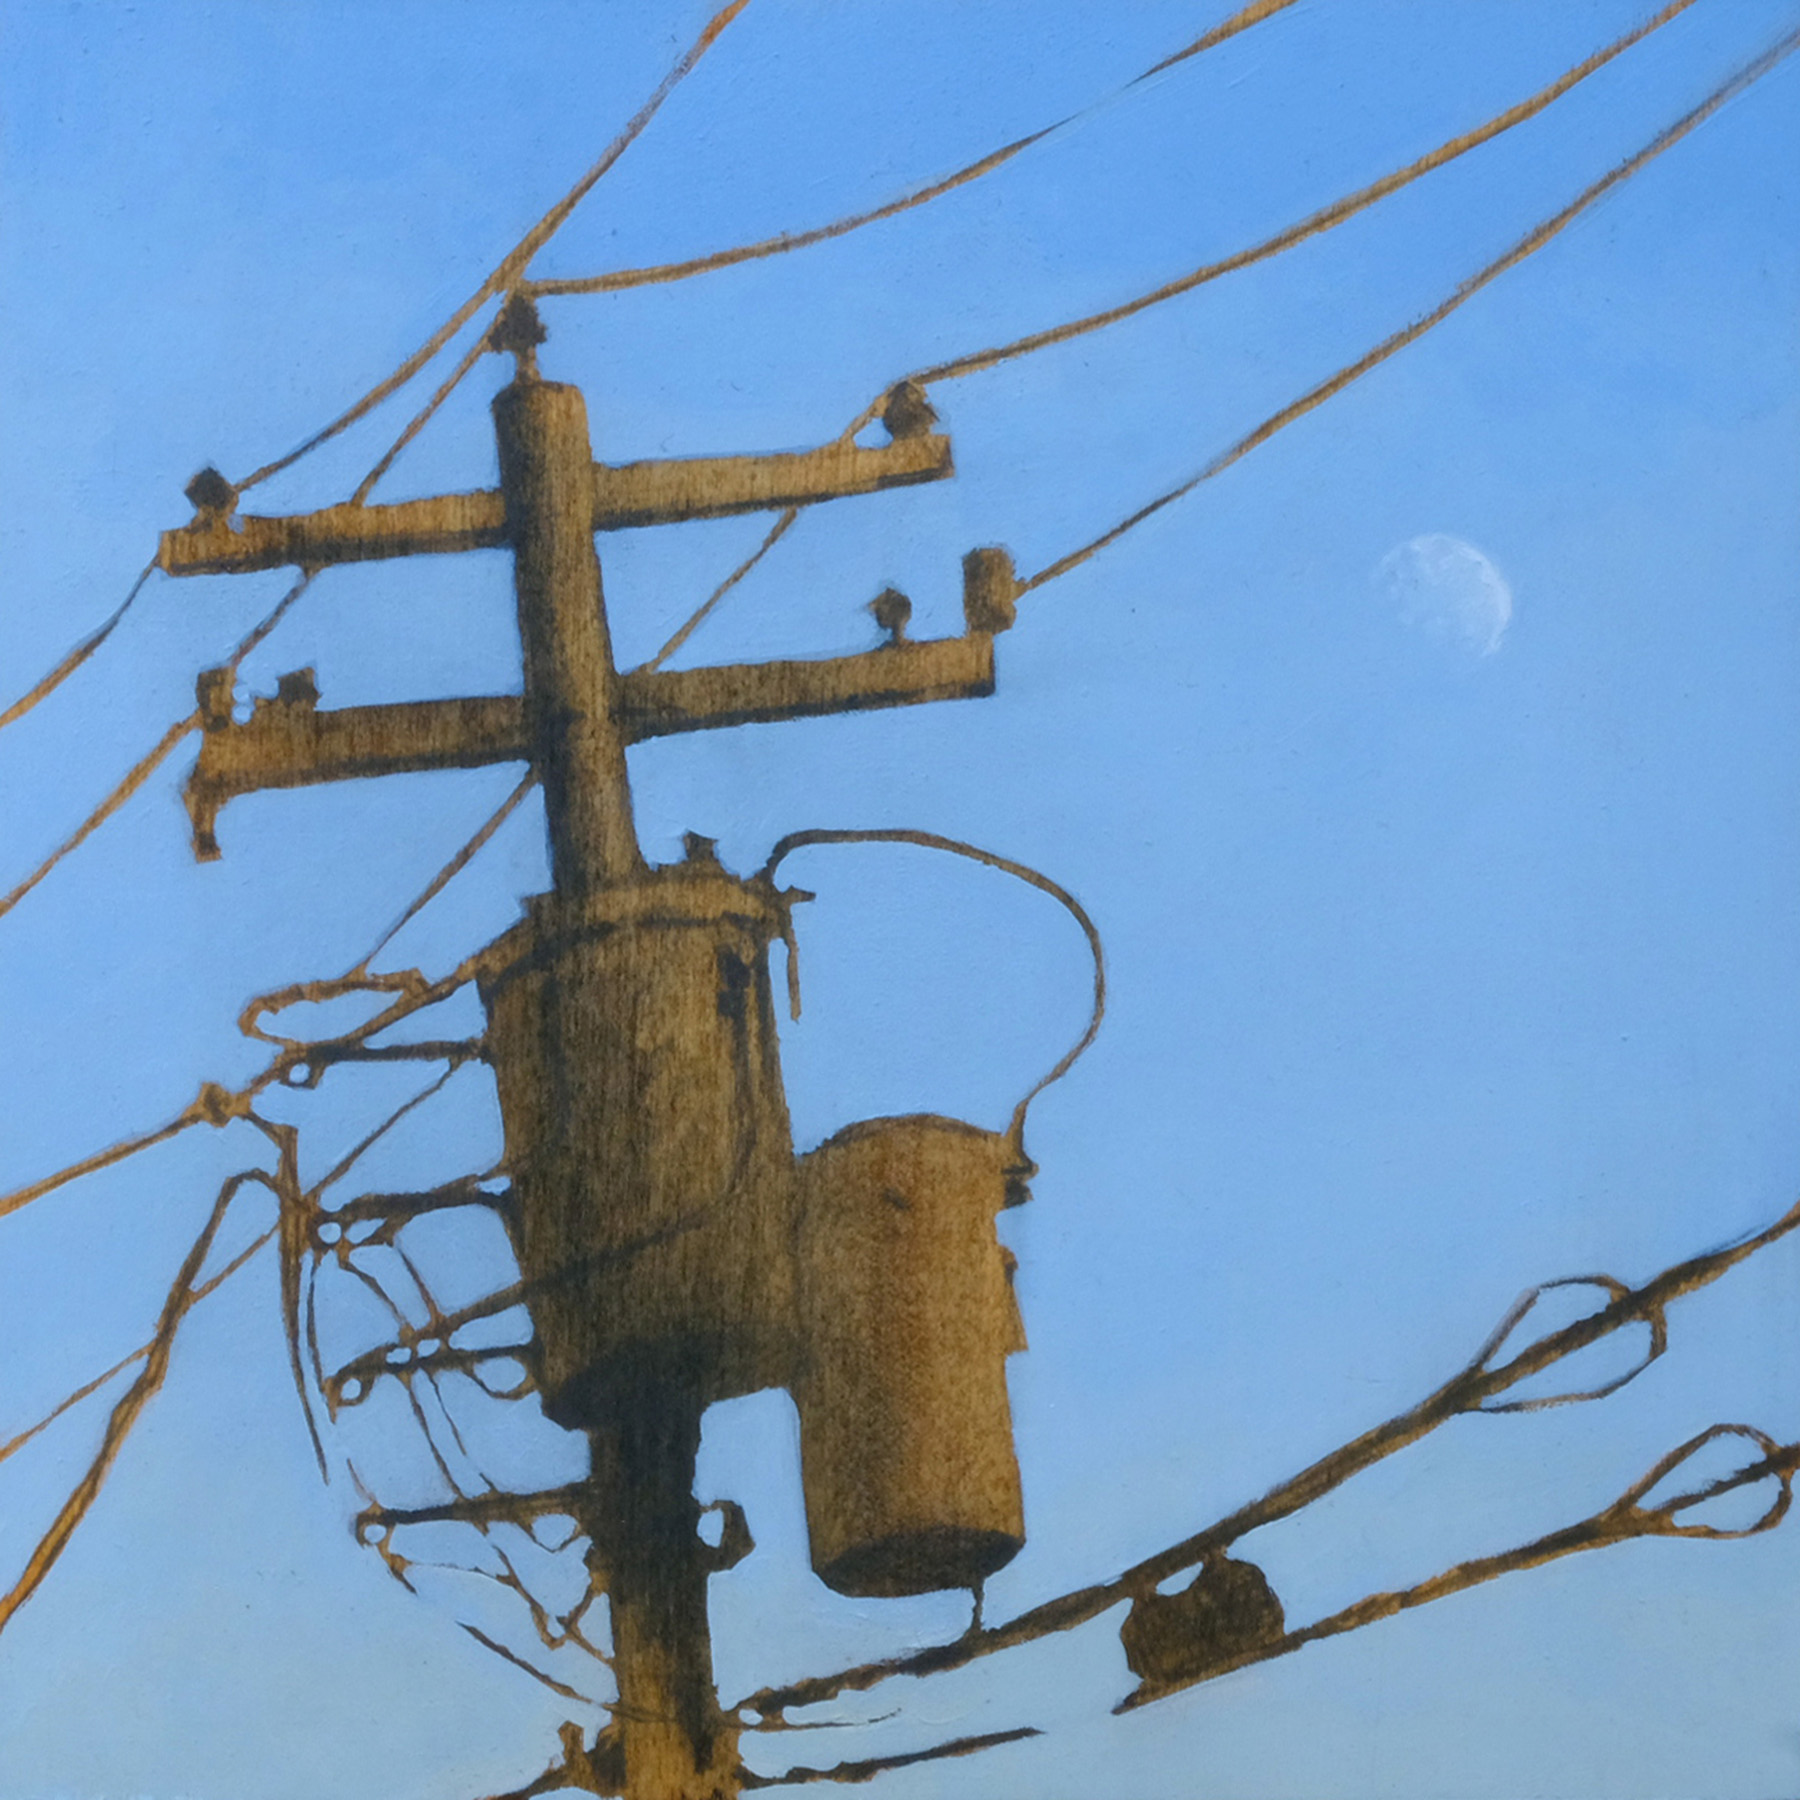 Wired in front of the Moon